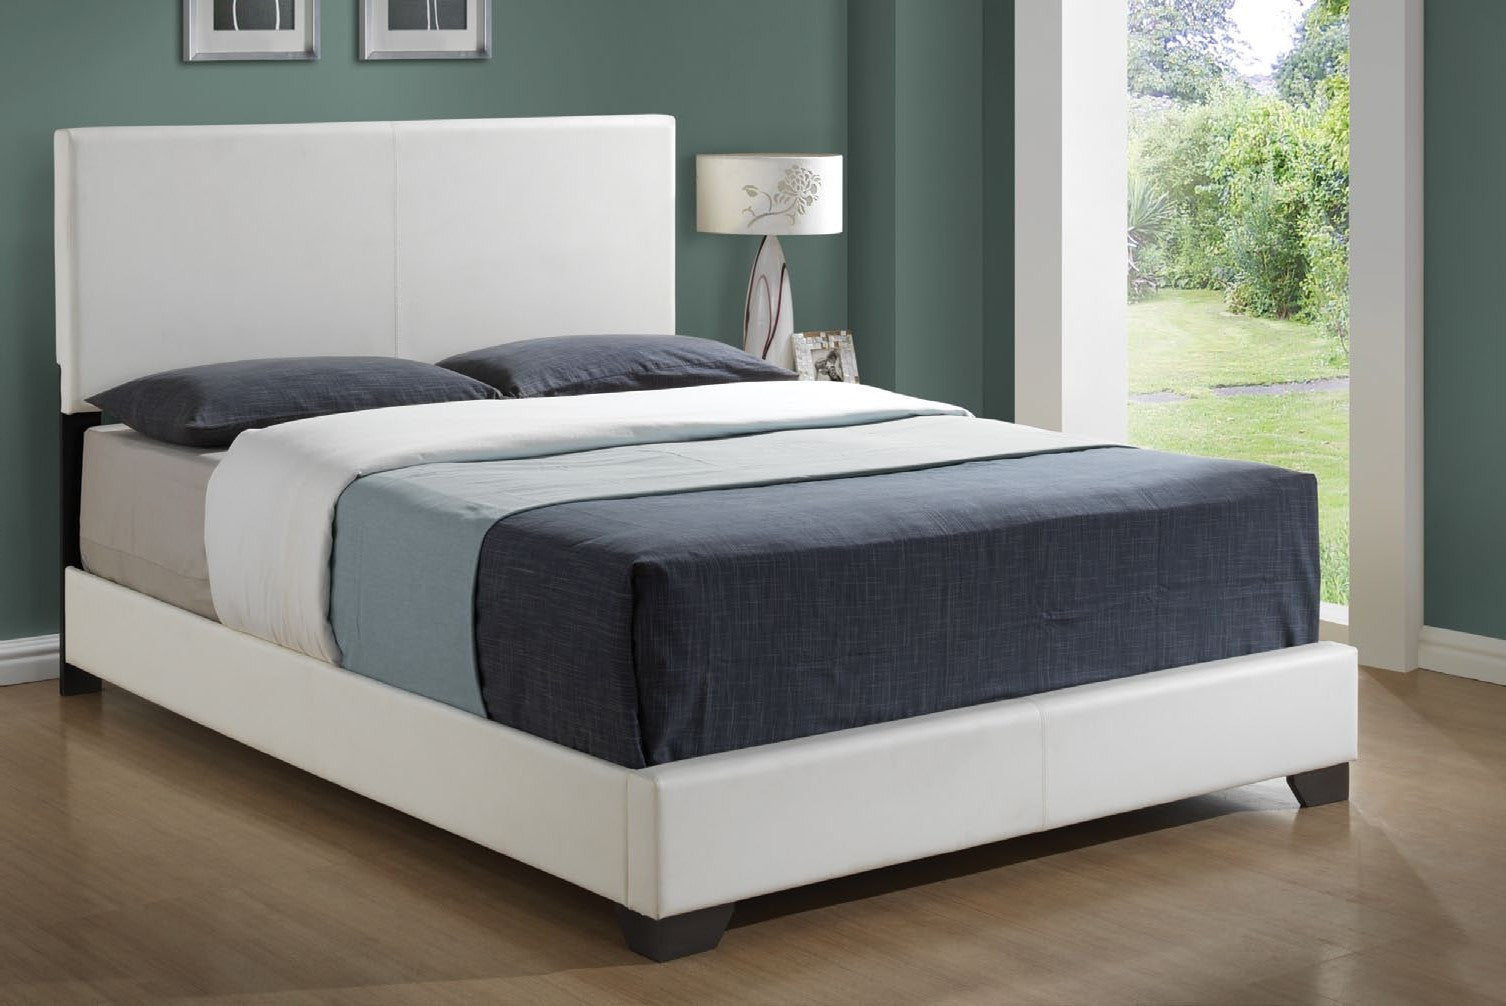 white leather look queen size bed lit queen simili cuir blanc - Lit Queen Size